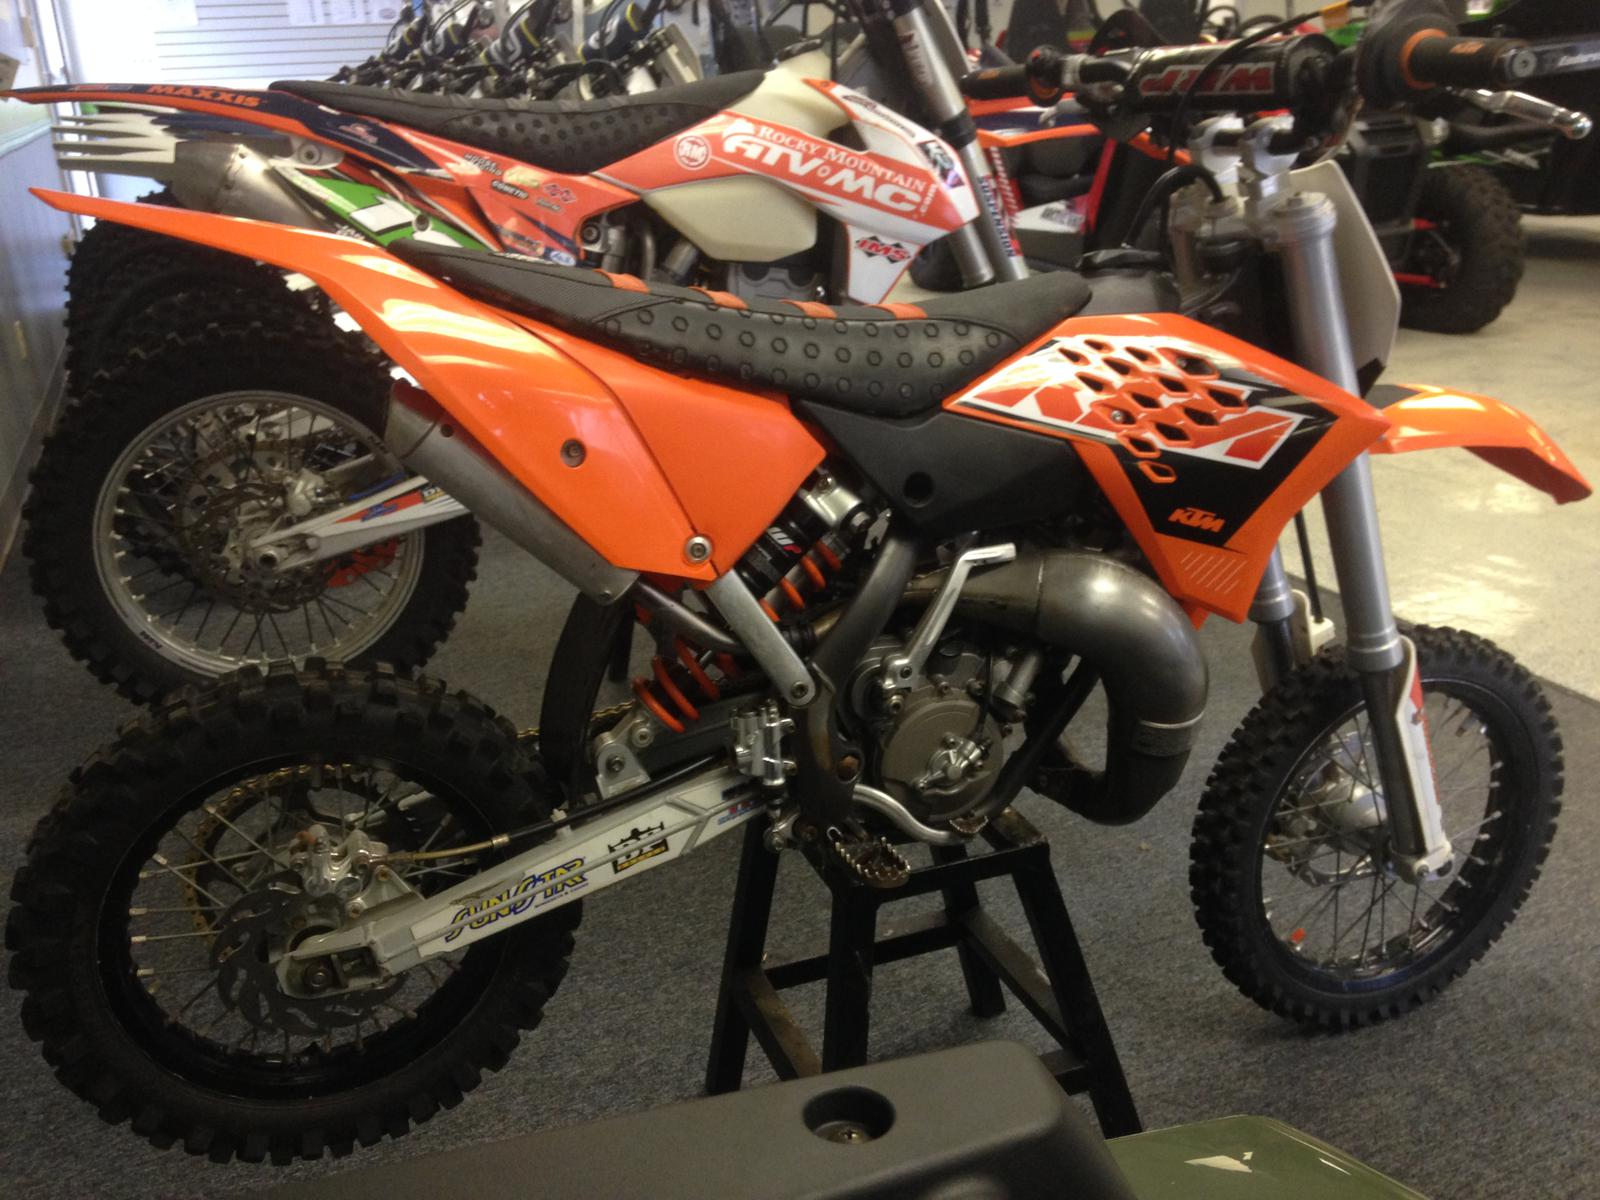 2015 ktm 65 sx for sale in richeyville, pa | schulz cycle & atv